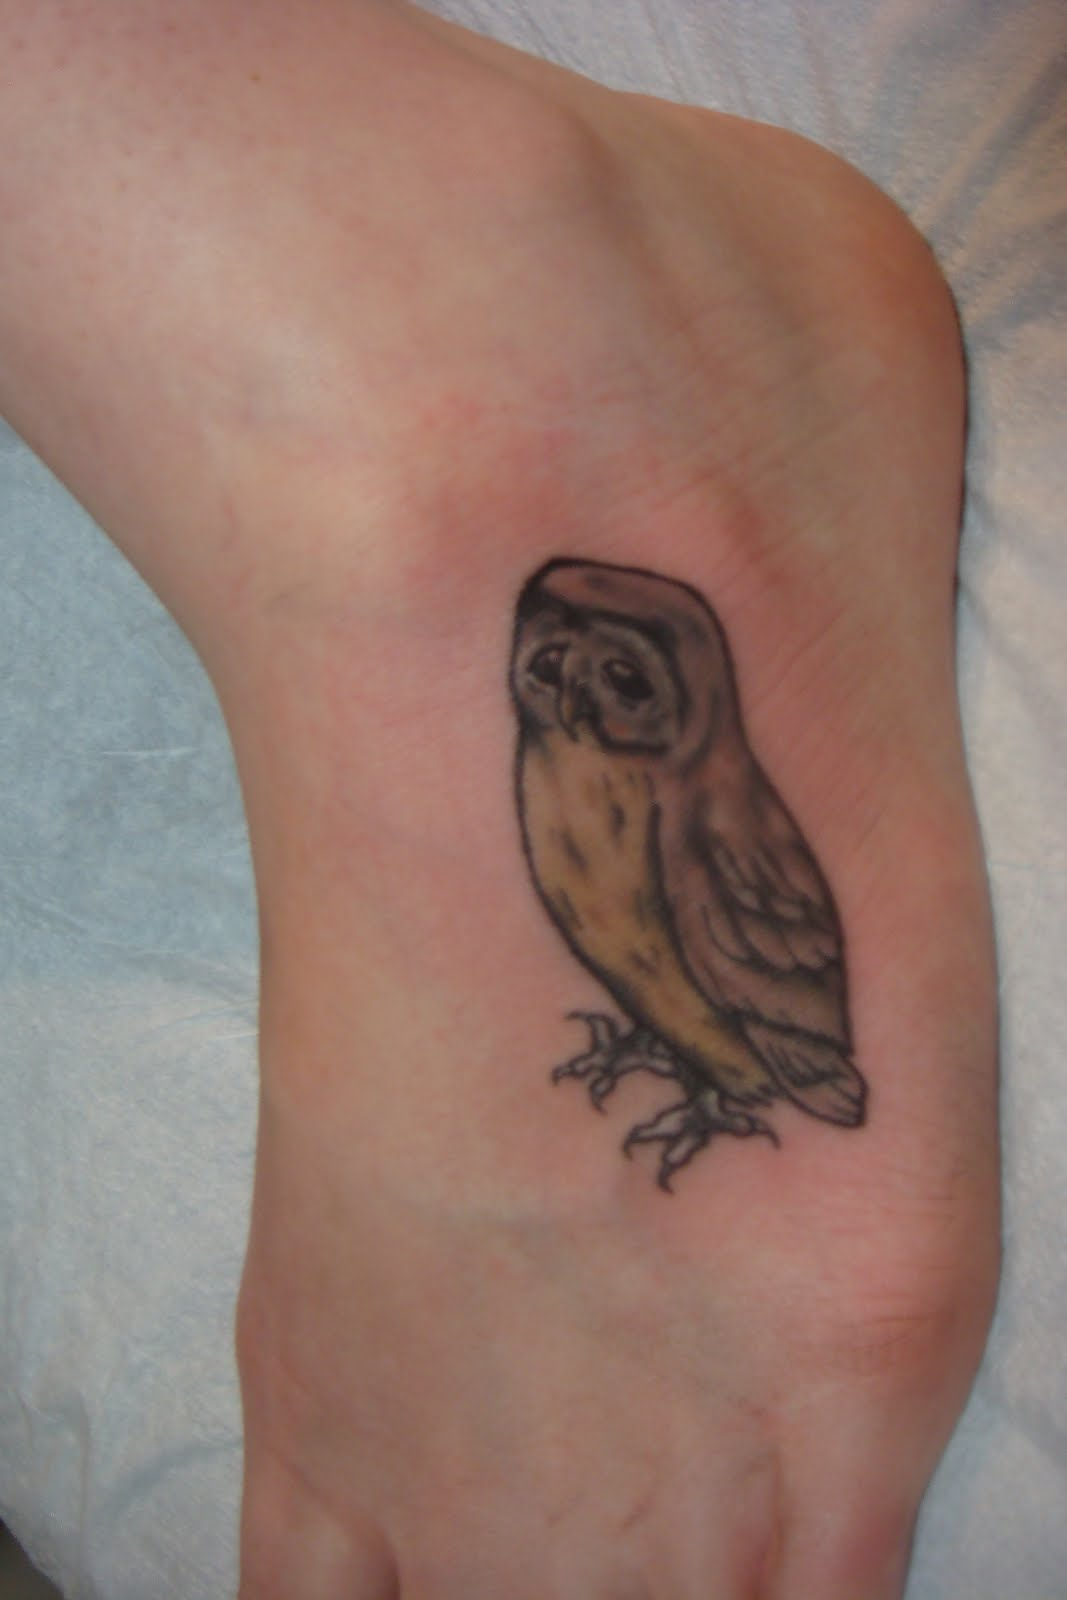 Cute owl tattoos on foot - photo#23